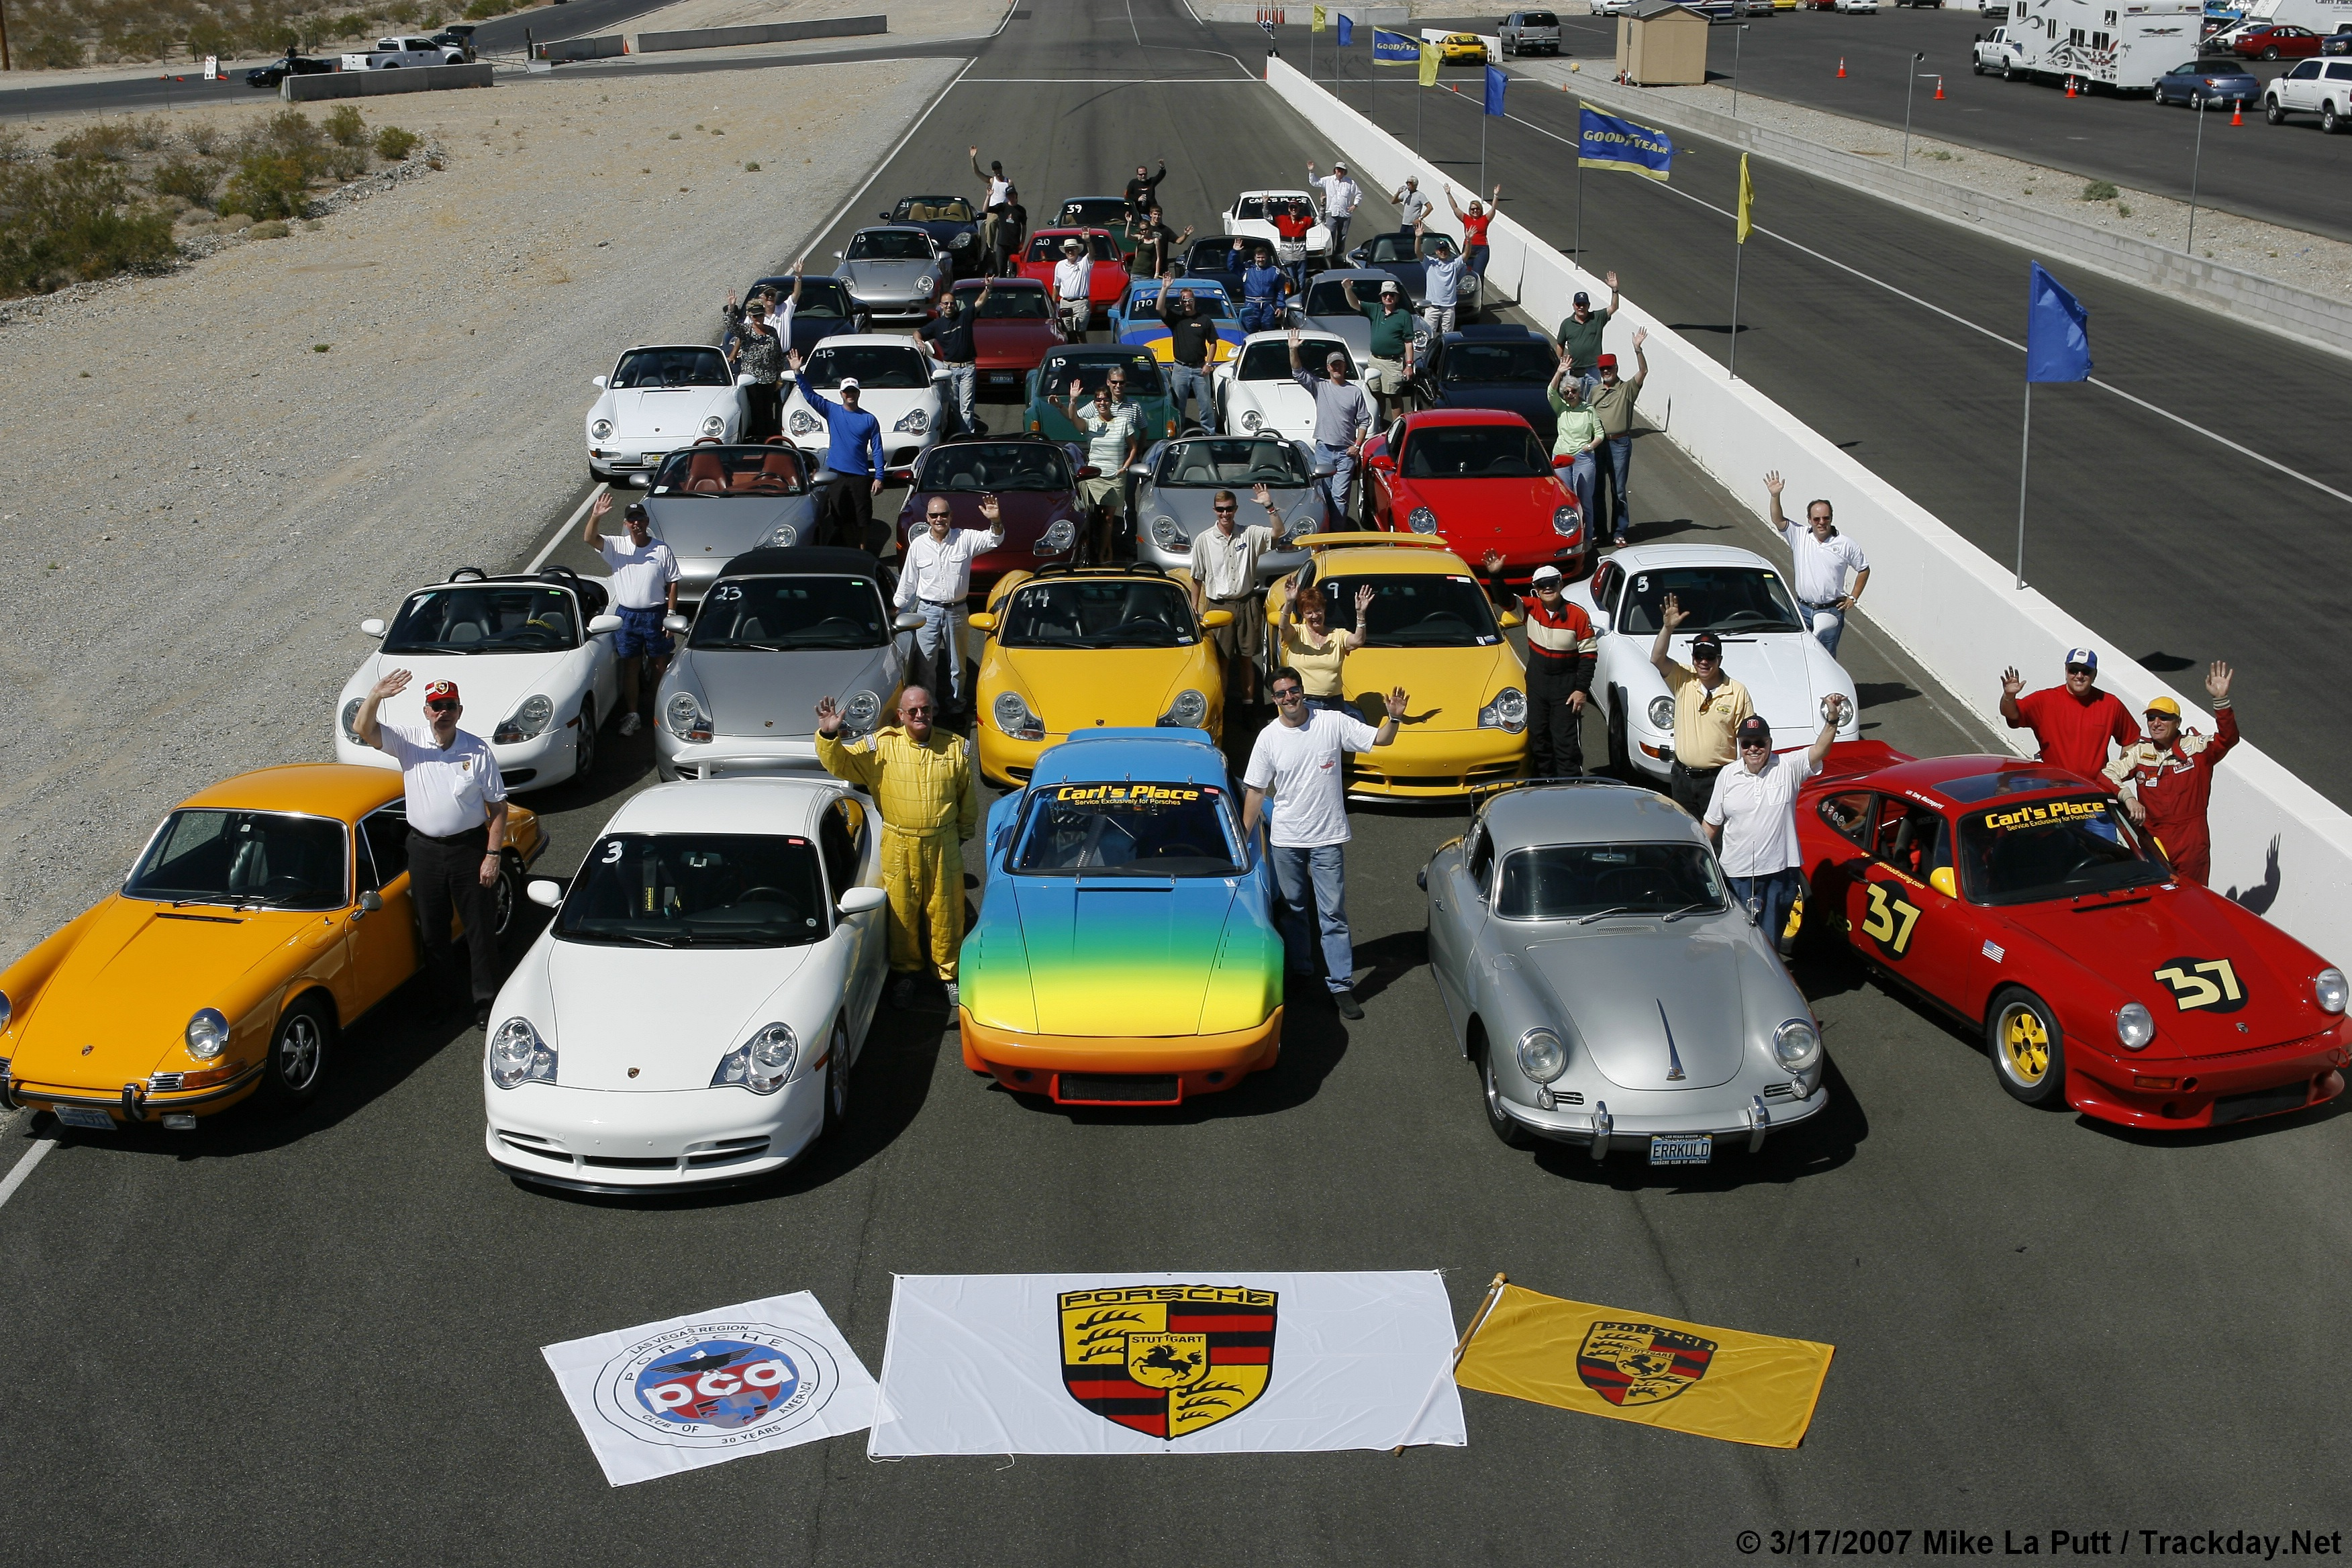 Porsche club in usa